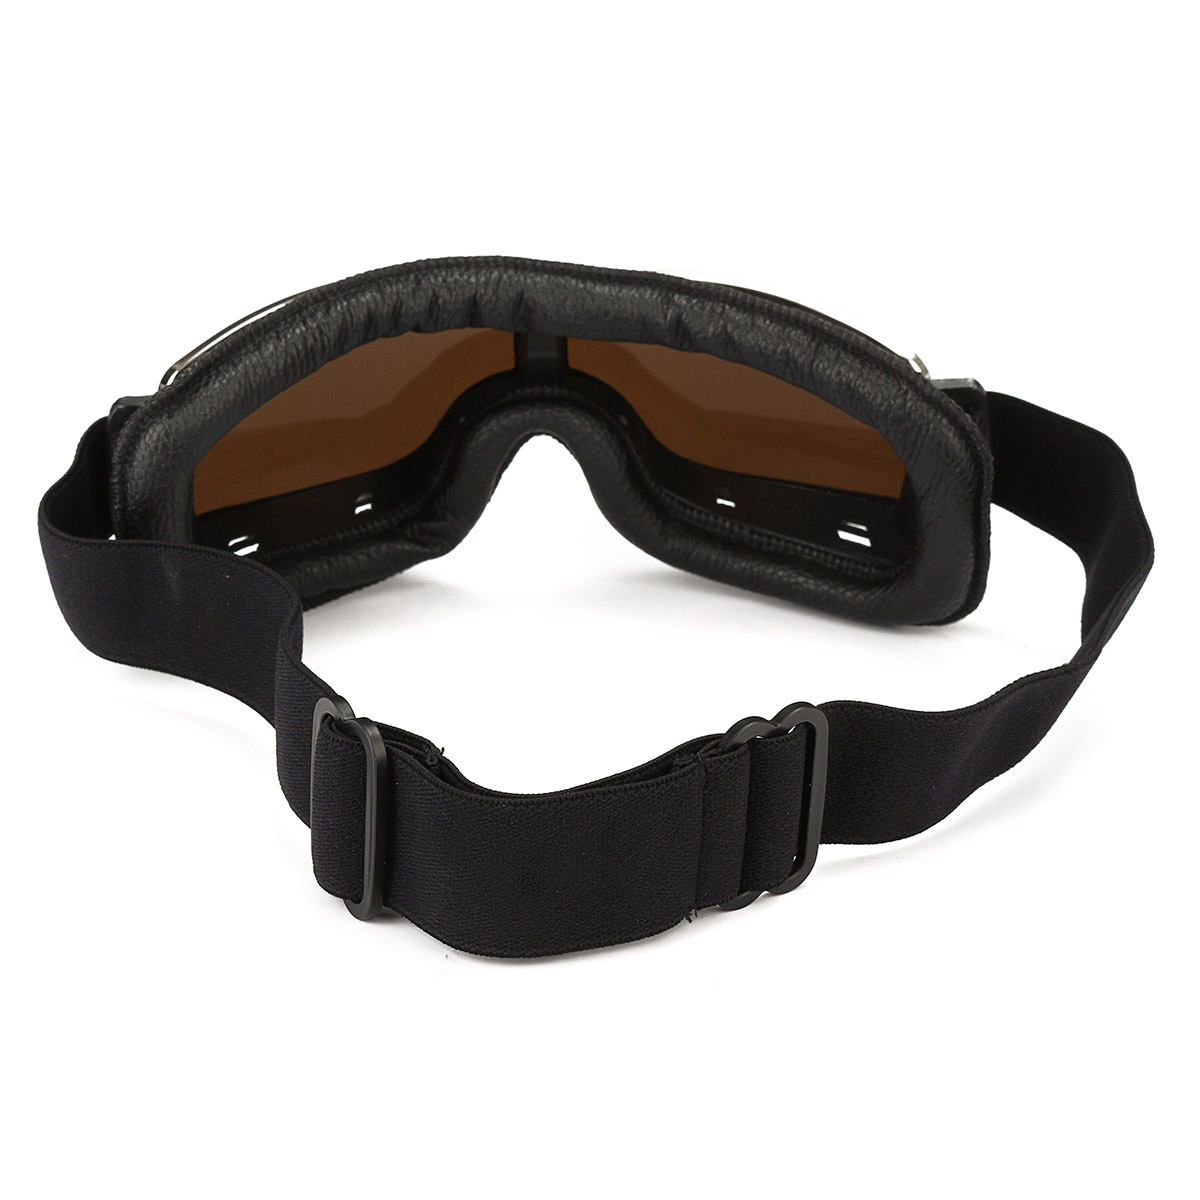 Helmet Leather Goggles Anti-UV Protective Glasses Eyewear Motorcycle Bike Scooter